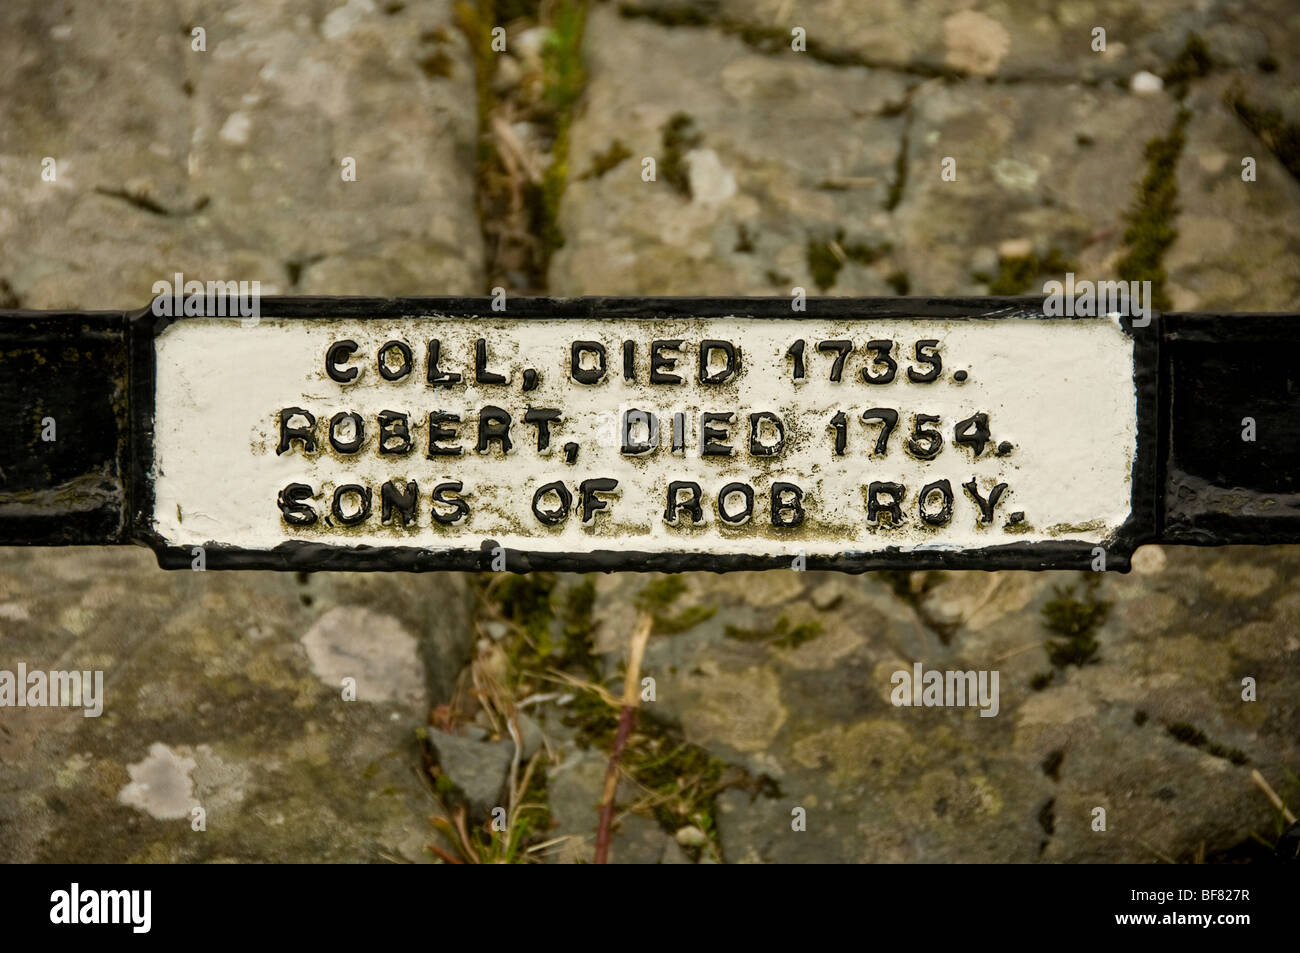 Coll and Robert Macgregor's name plaque on Rob Roy's family grave Stock Photo